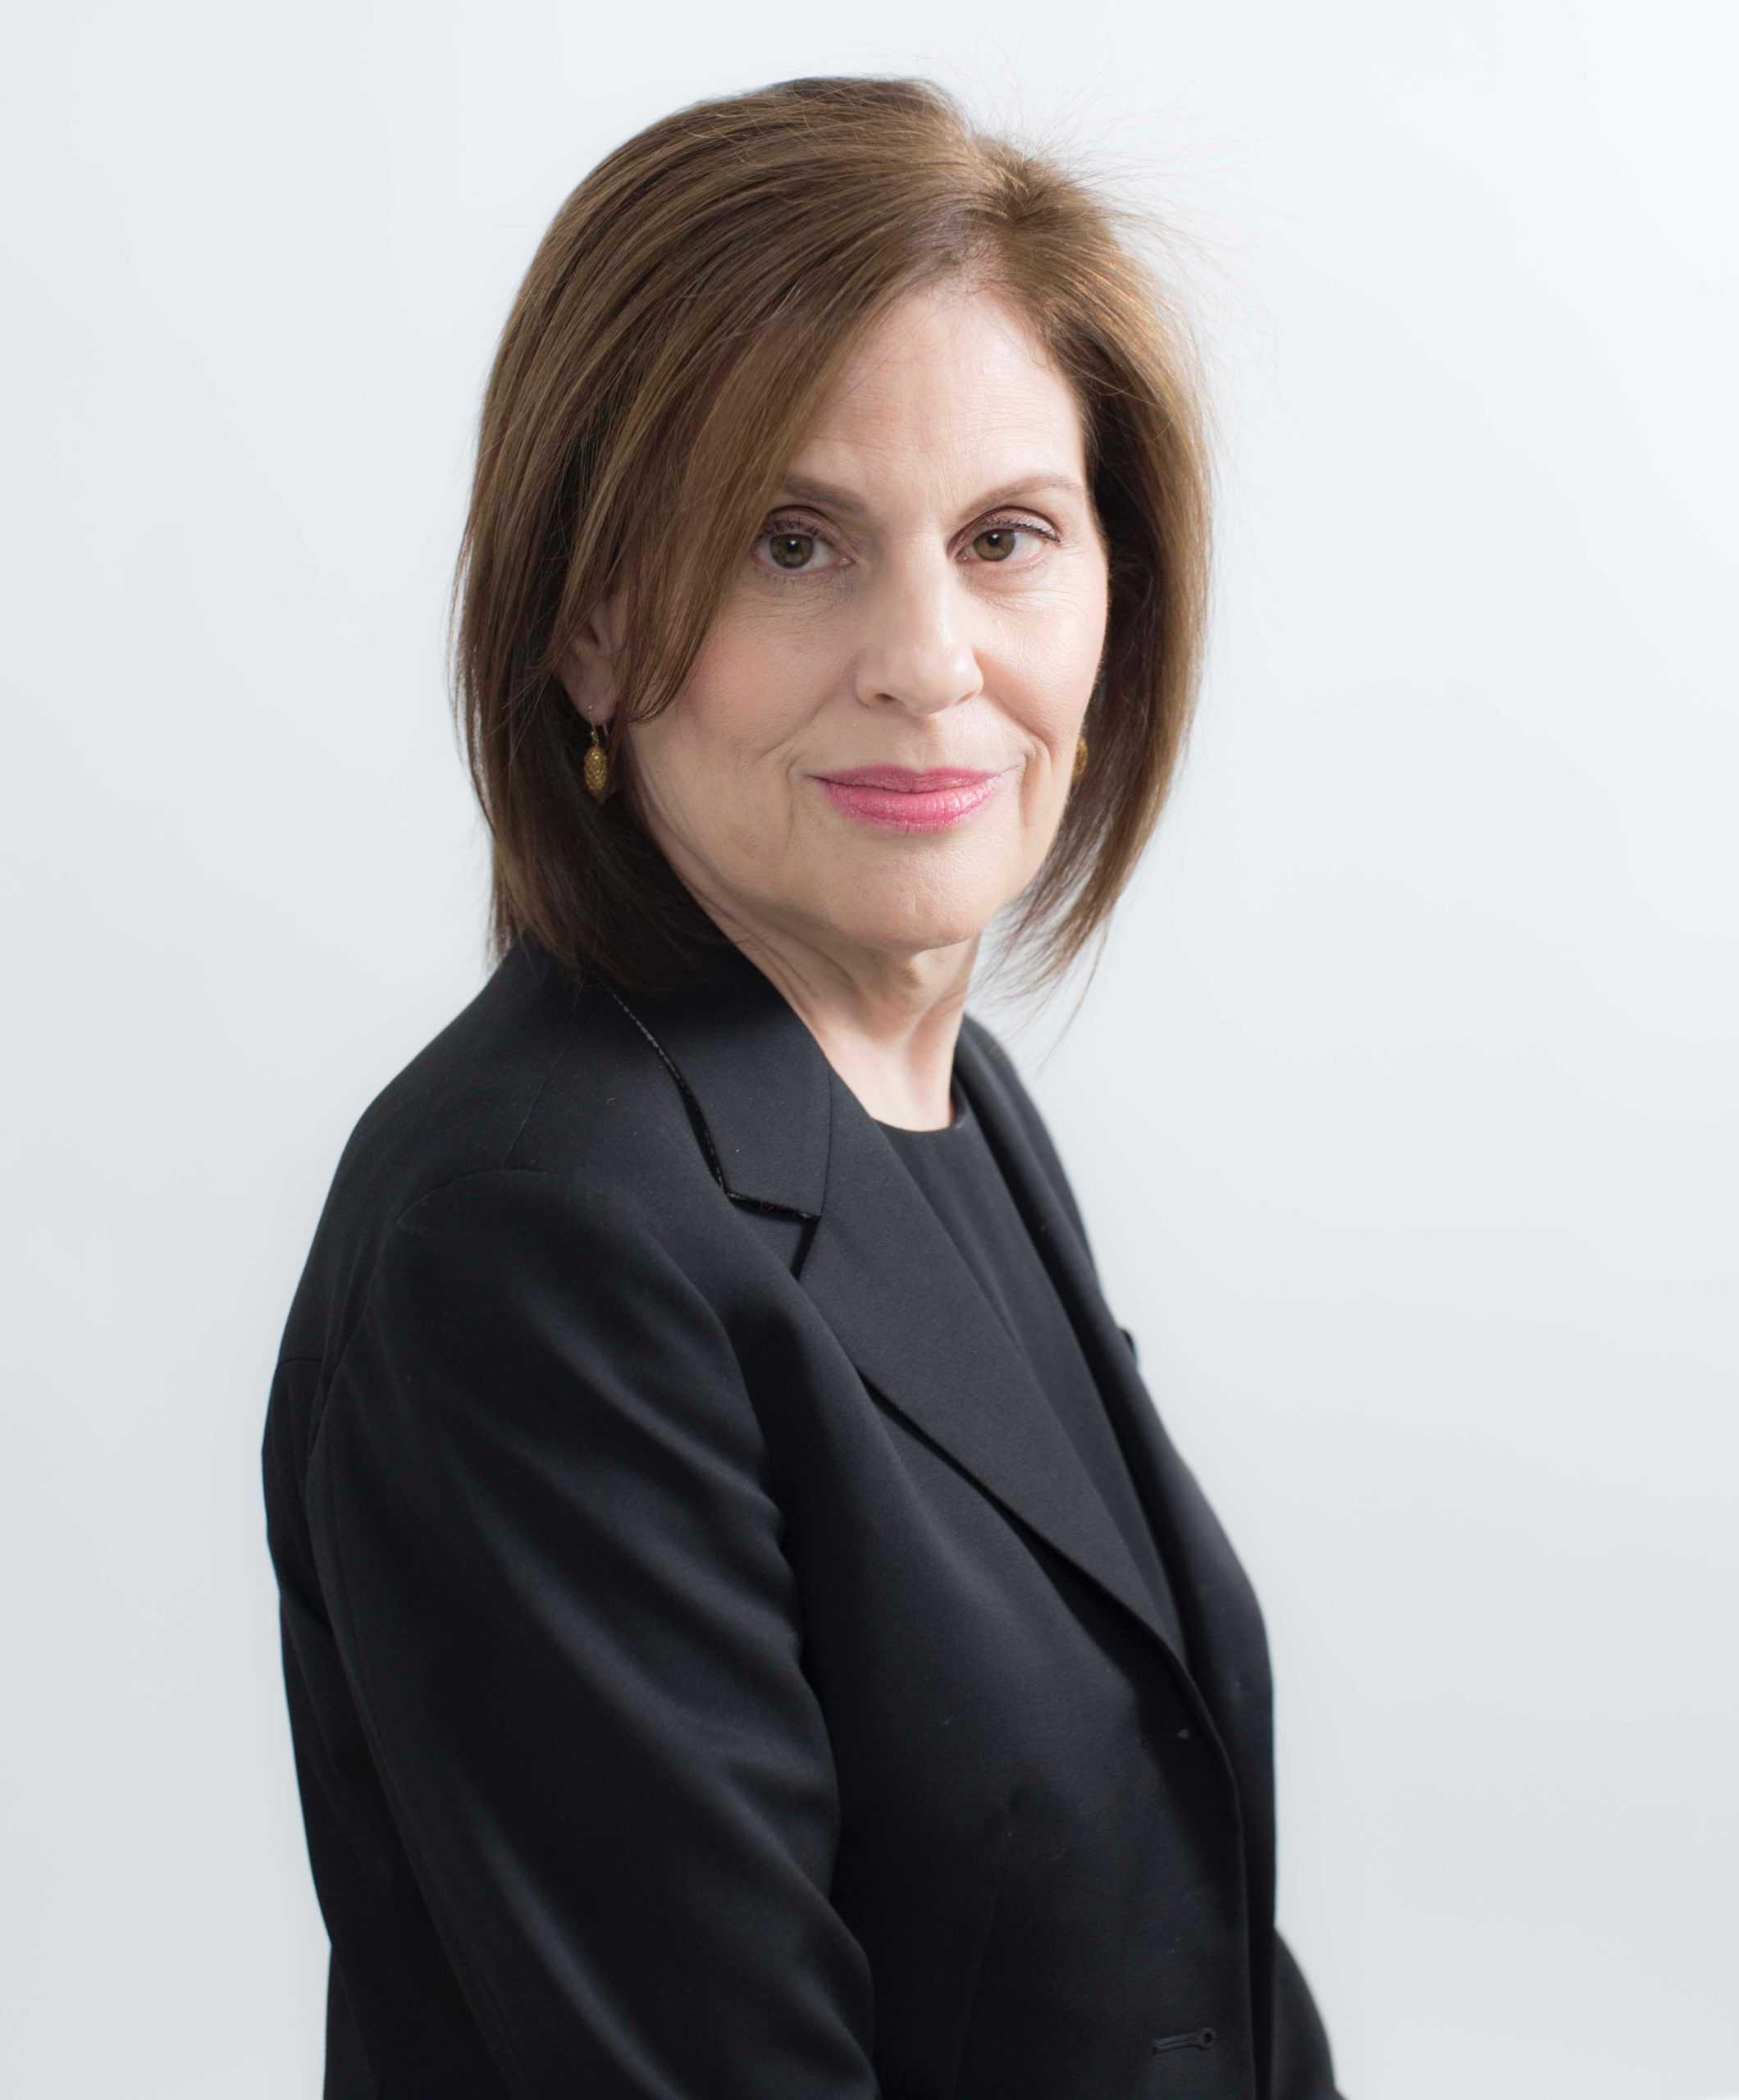 The Inside Scoop with Linda G. Levy: Moving Forward with Optimism